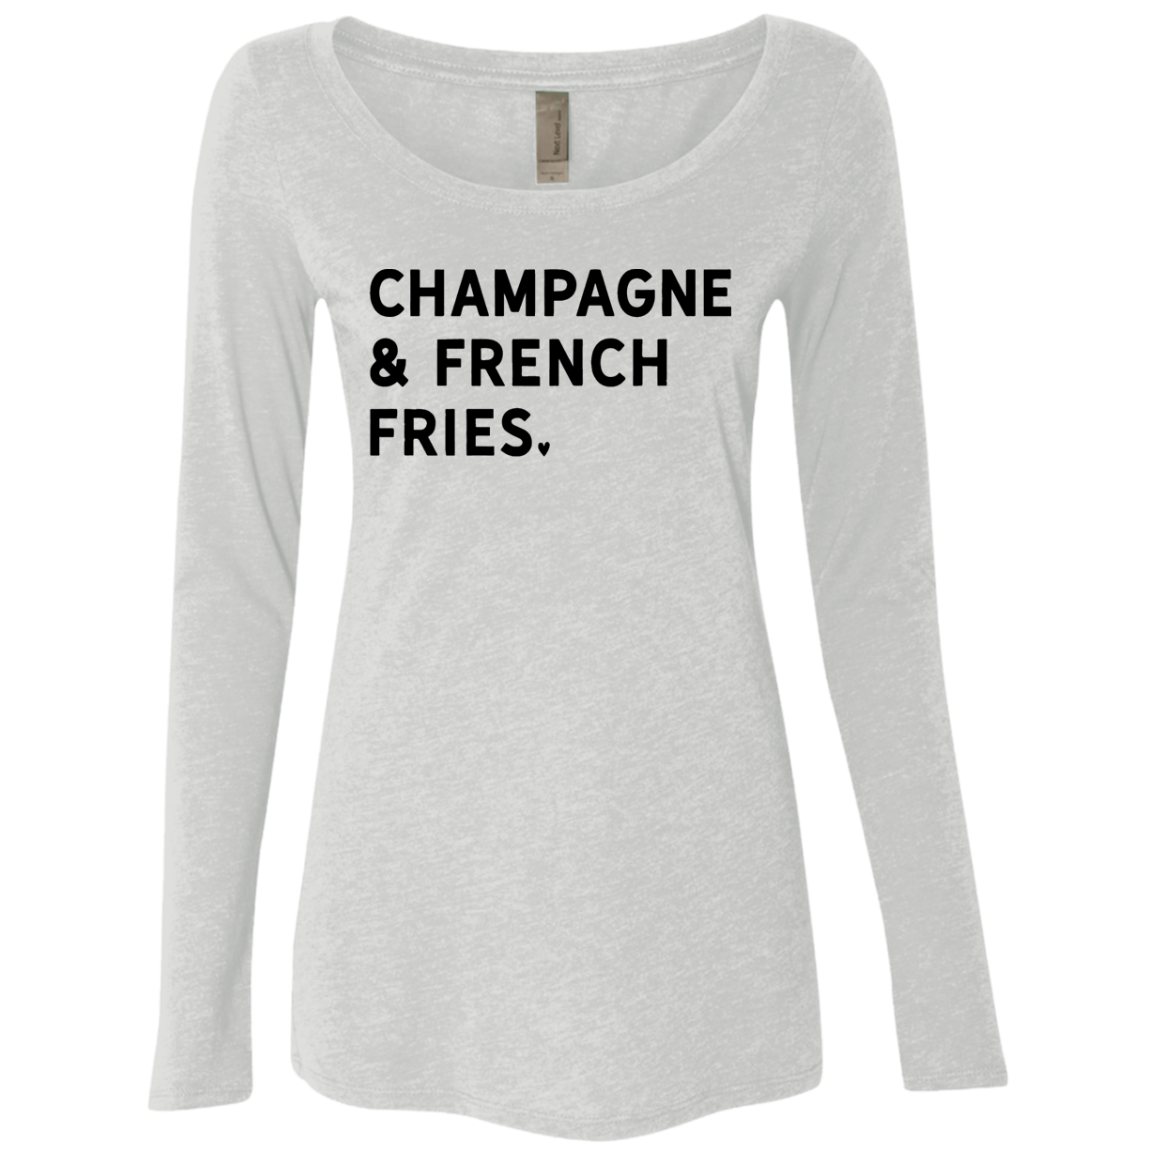 Champagne and French Fries Women's Long Sleeve Tee